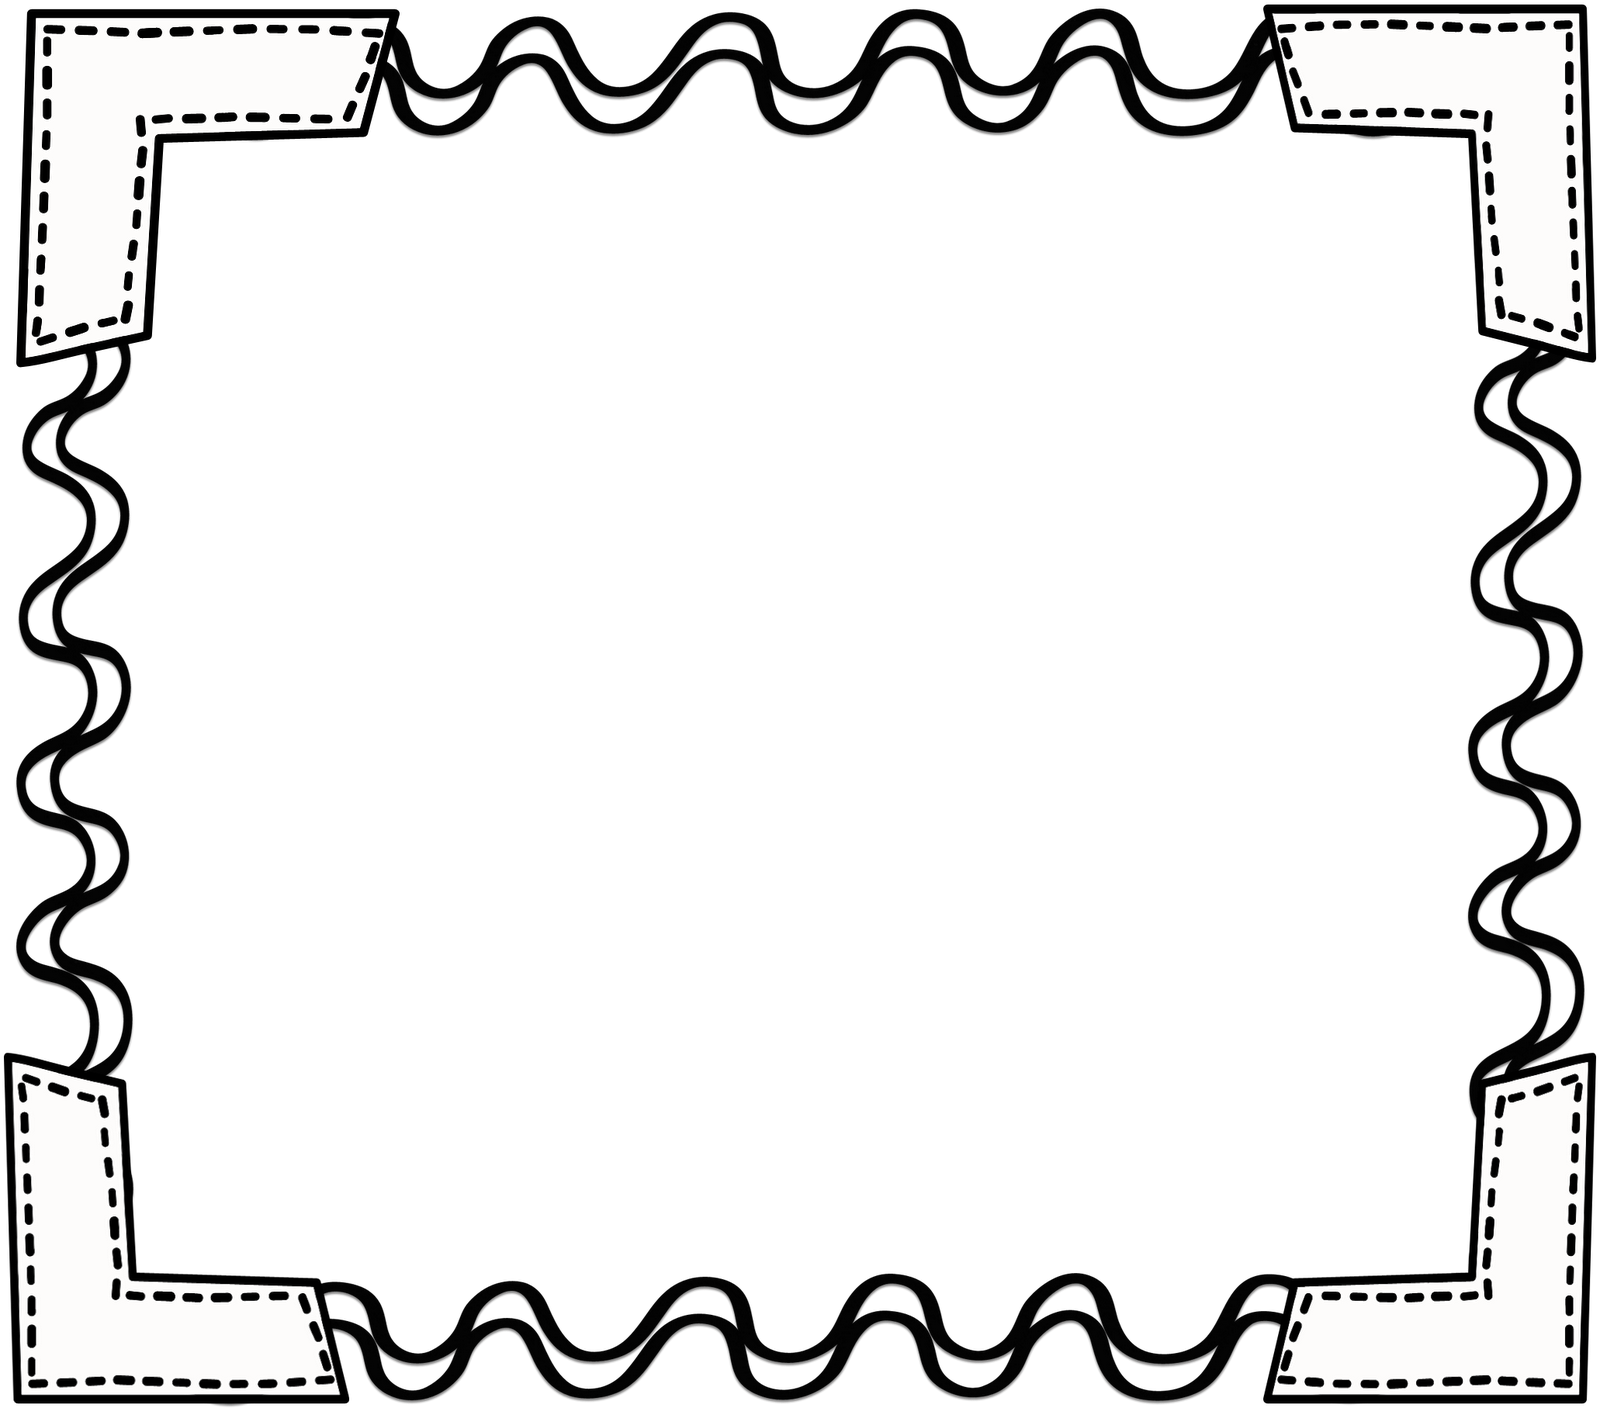 Yearbook clipart border. Black white scribbleframe png